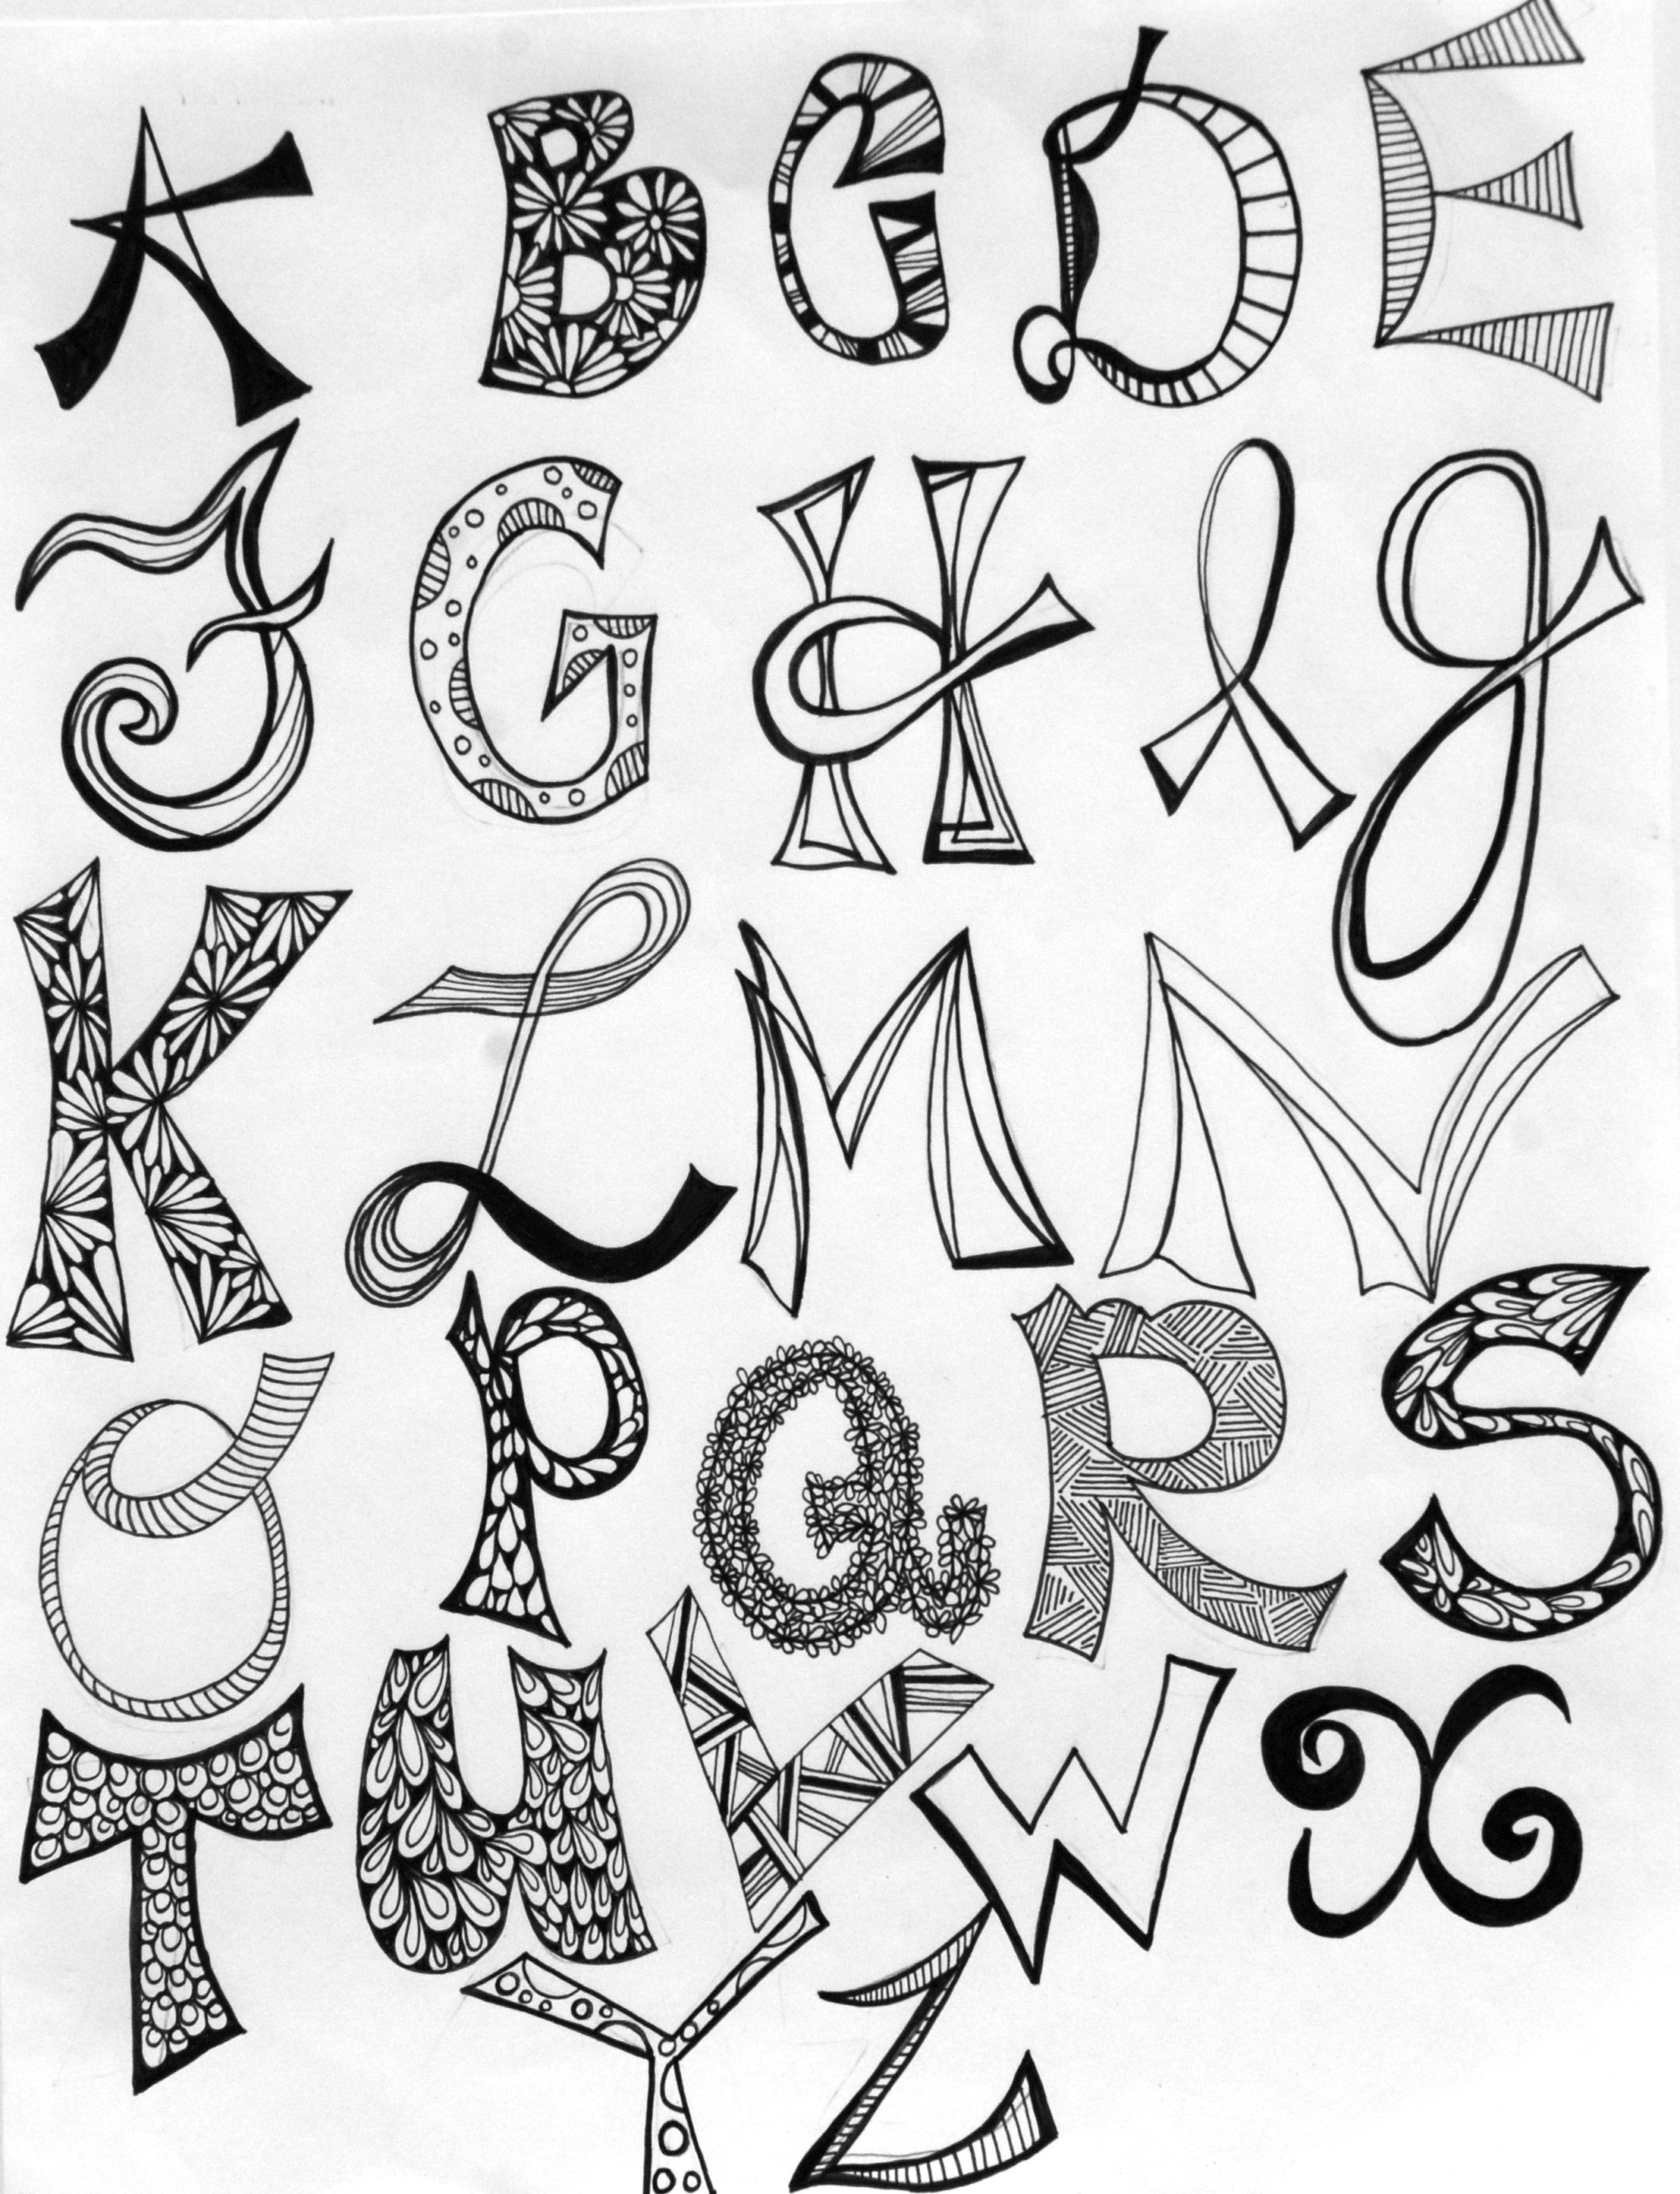 13 Cool Letter Fonts To Draw Images Easy To Draw Cool Letter Fonts